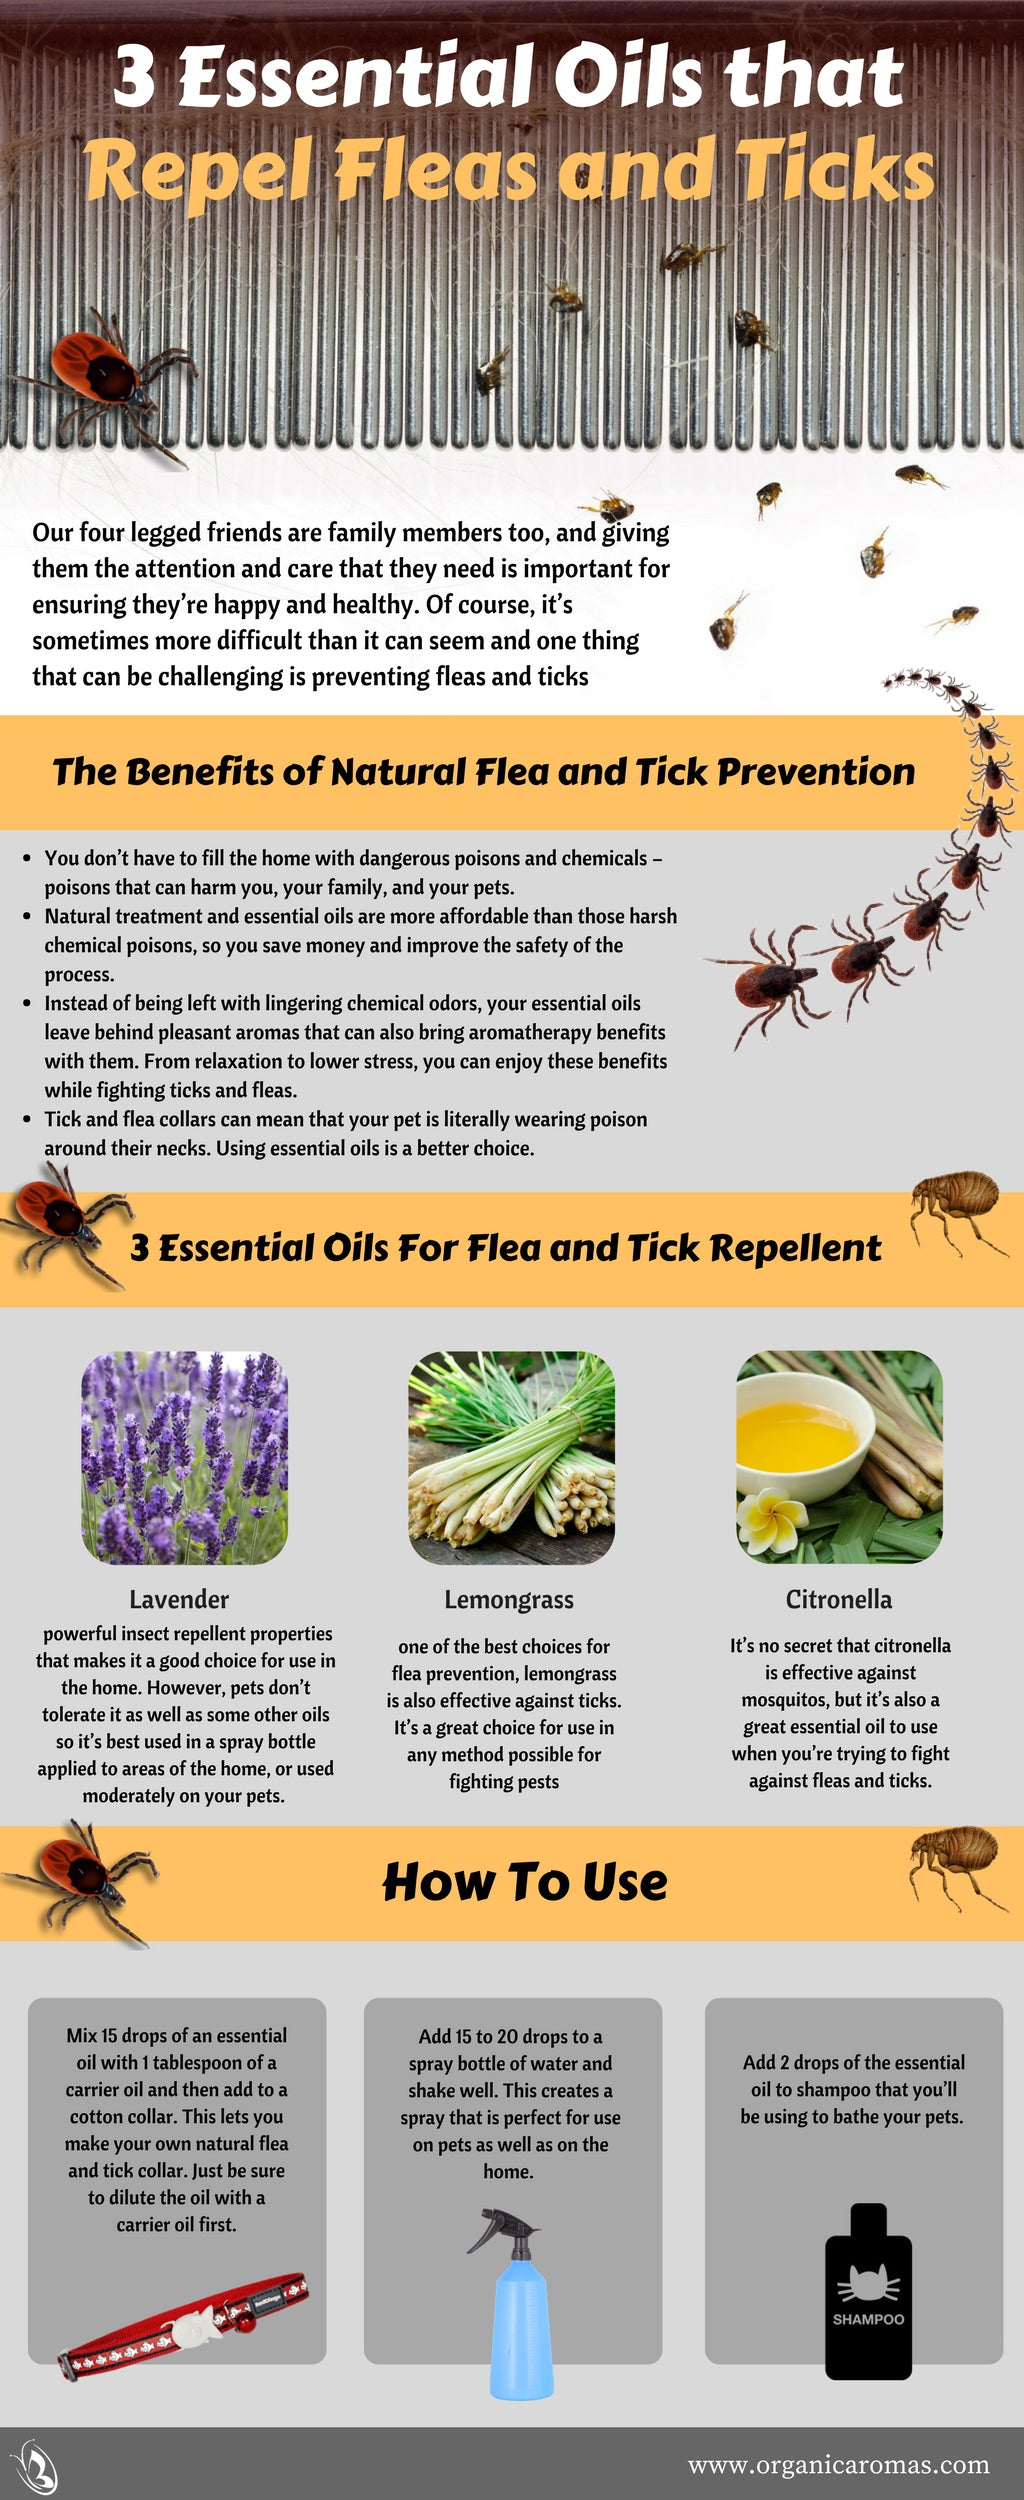 3 Essential Oils that Repel Fleas and Ticks - Organic Aromas®